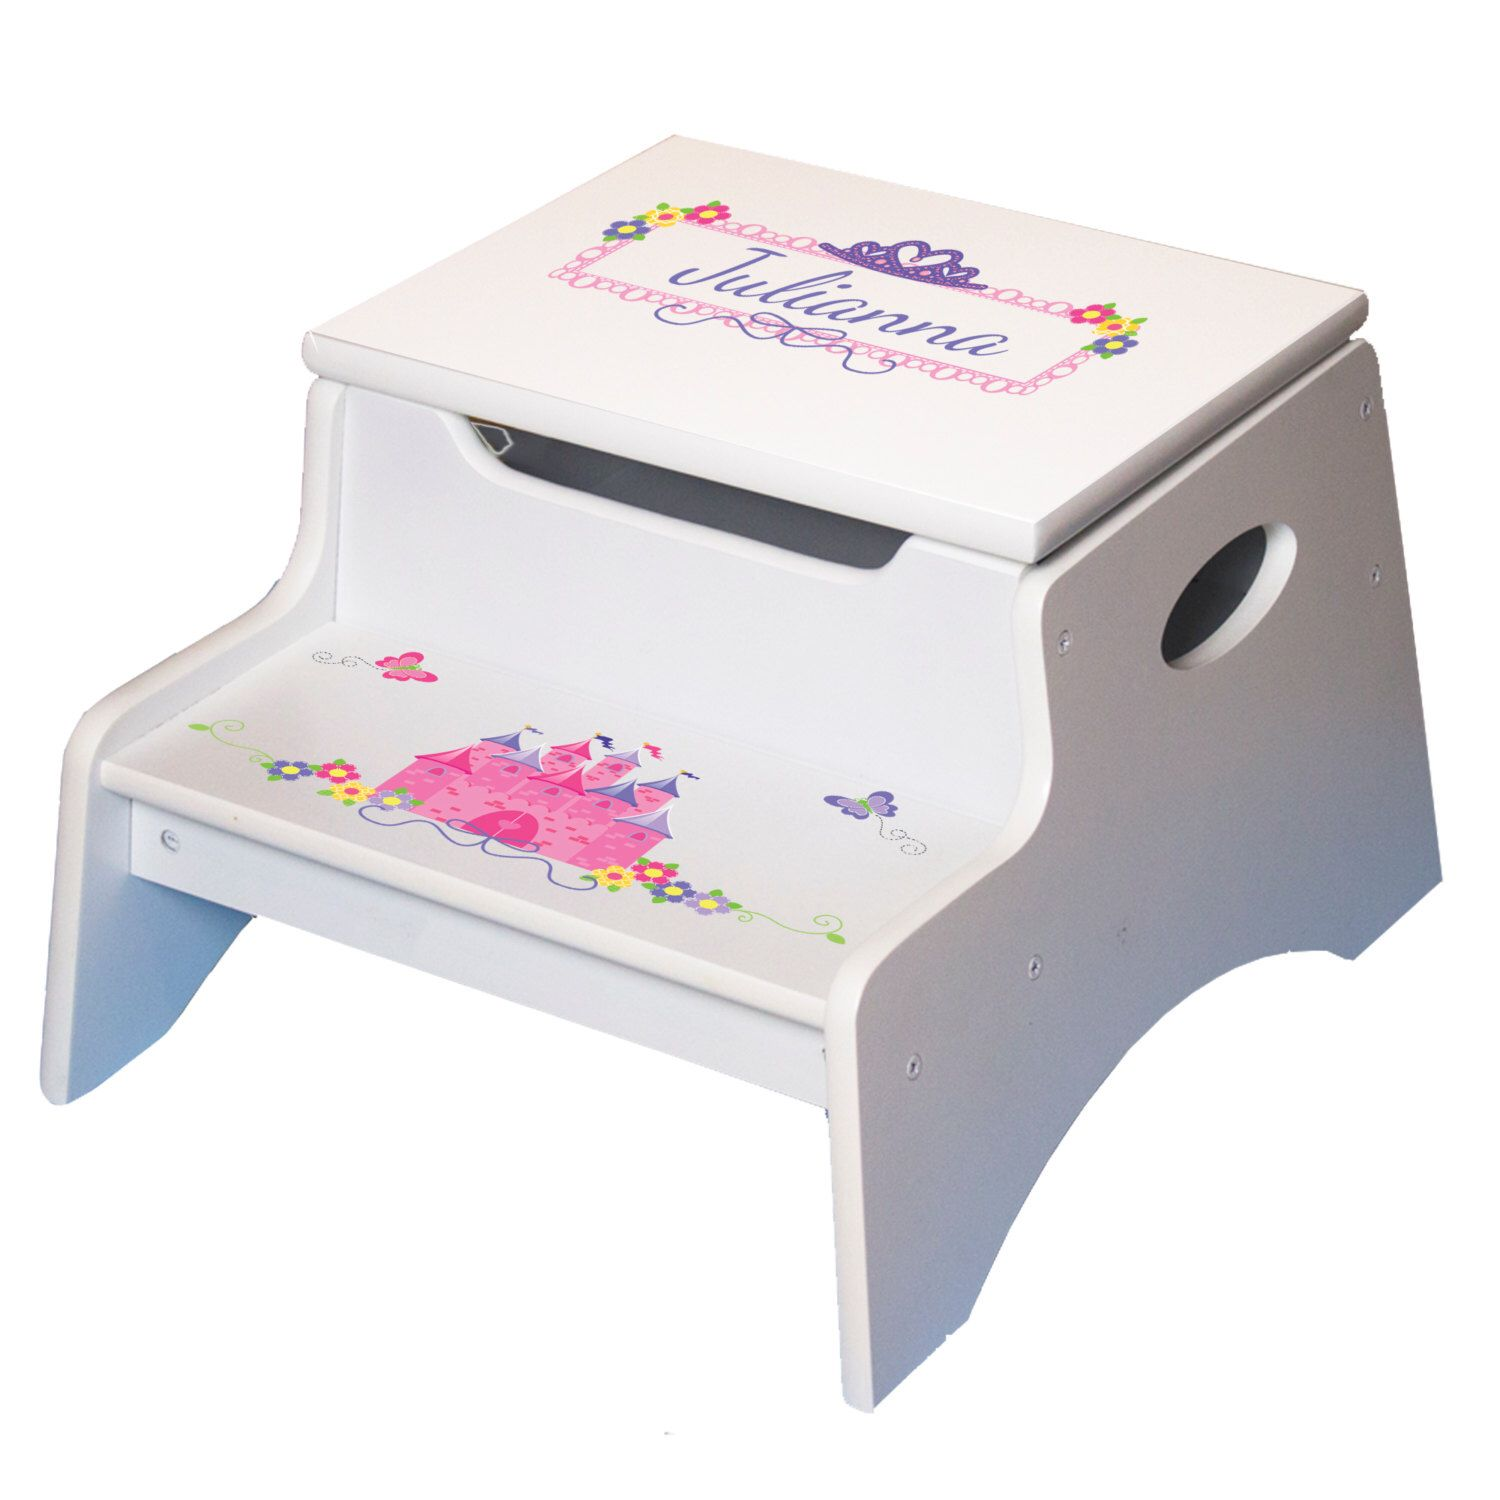 Girls Personalized Princess Step Stool w Storage Childs Wood Step N Stool Toddlers Baby Gift Frozen  sc 1 st  Pinterest & Girls Personalized Princess Step Stool w Storage Childs Wood Step ... islam-shia.org